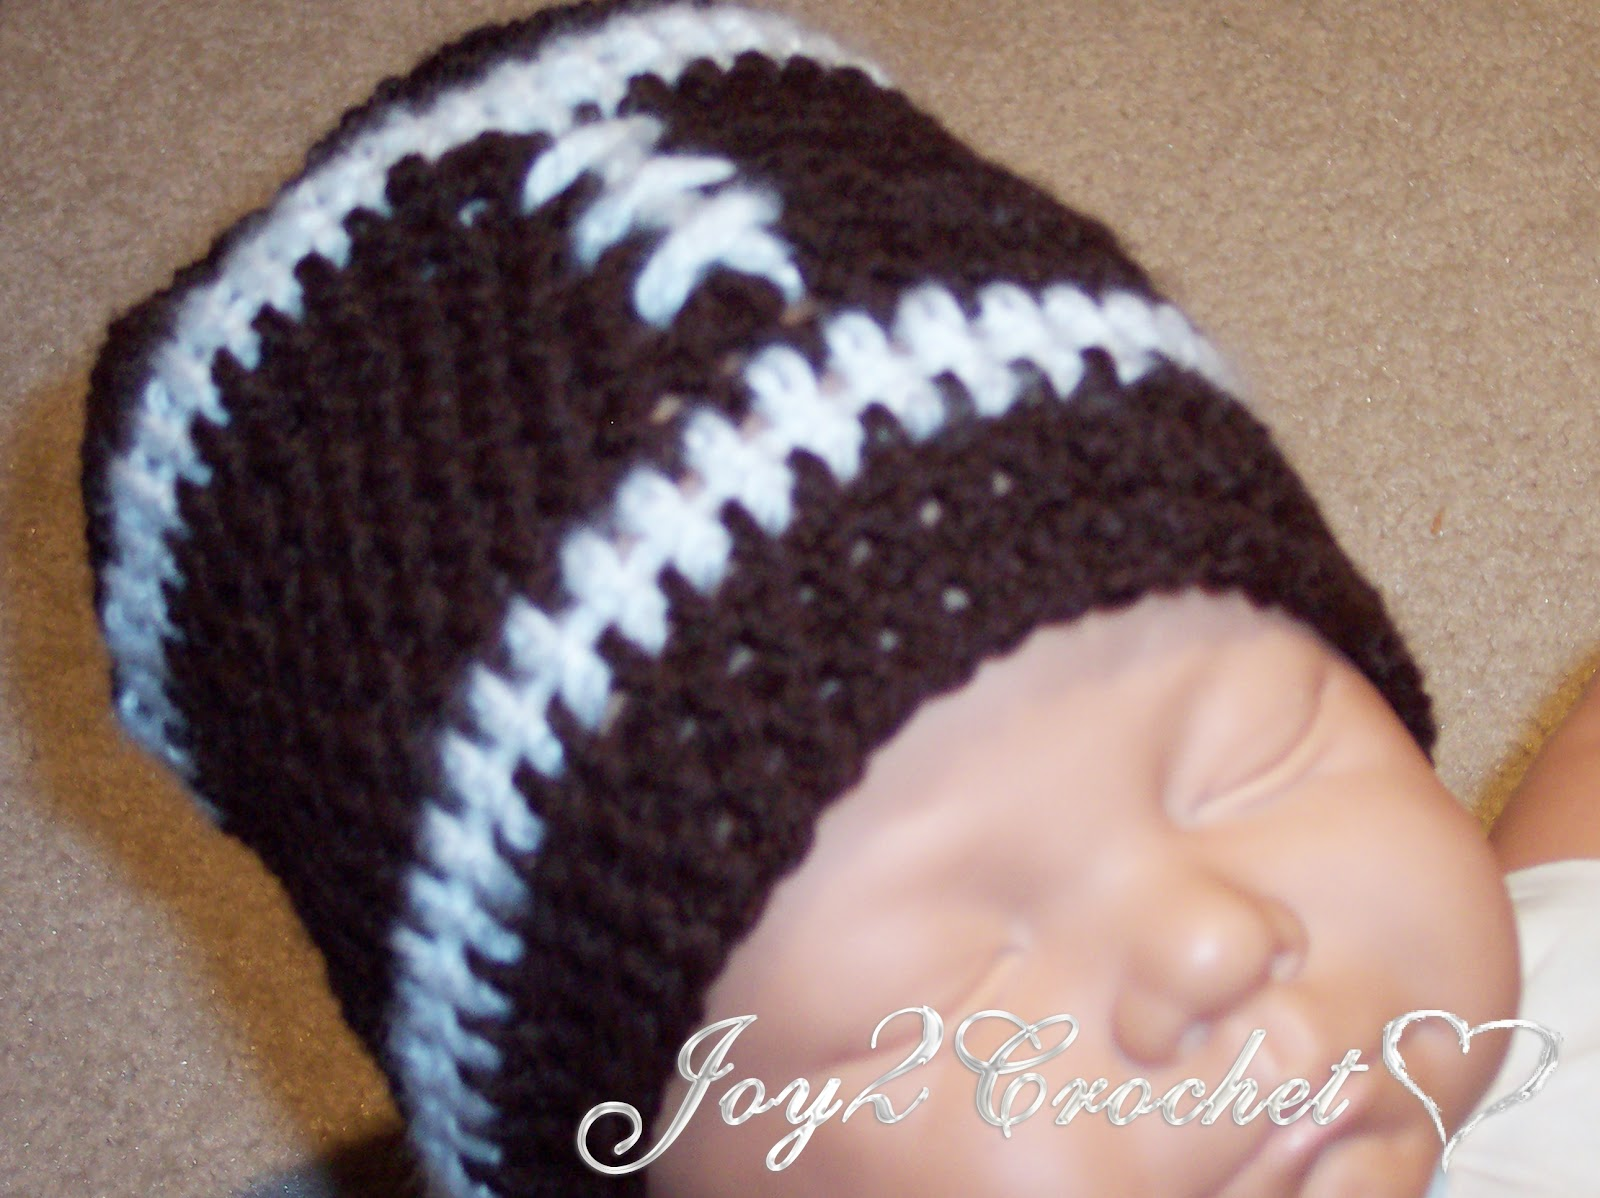 Free crochet pattern for baby football hat manet for joy 2 crochet baby football hat free crochet pattern bankloansurffo Choice Image